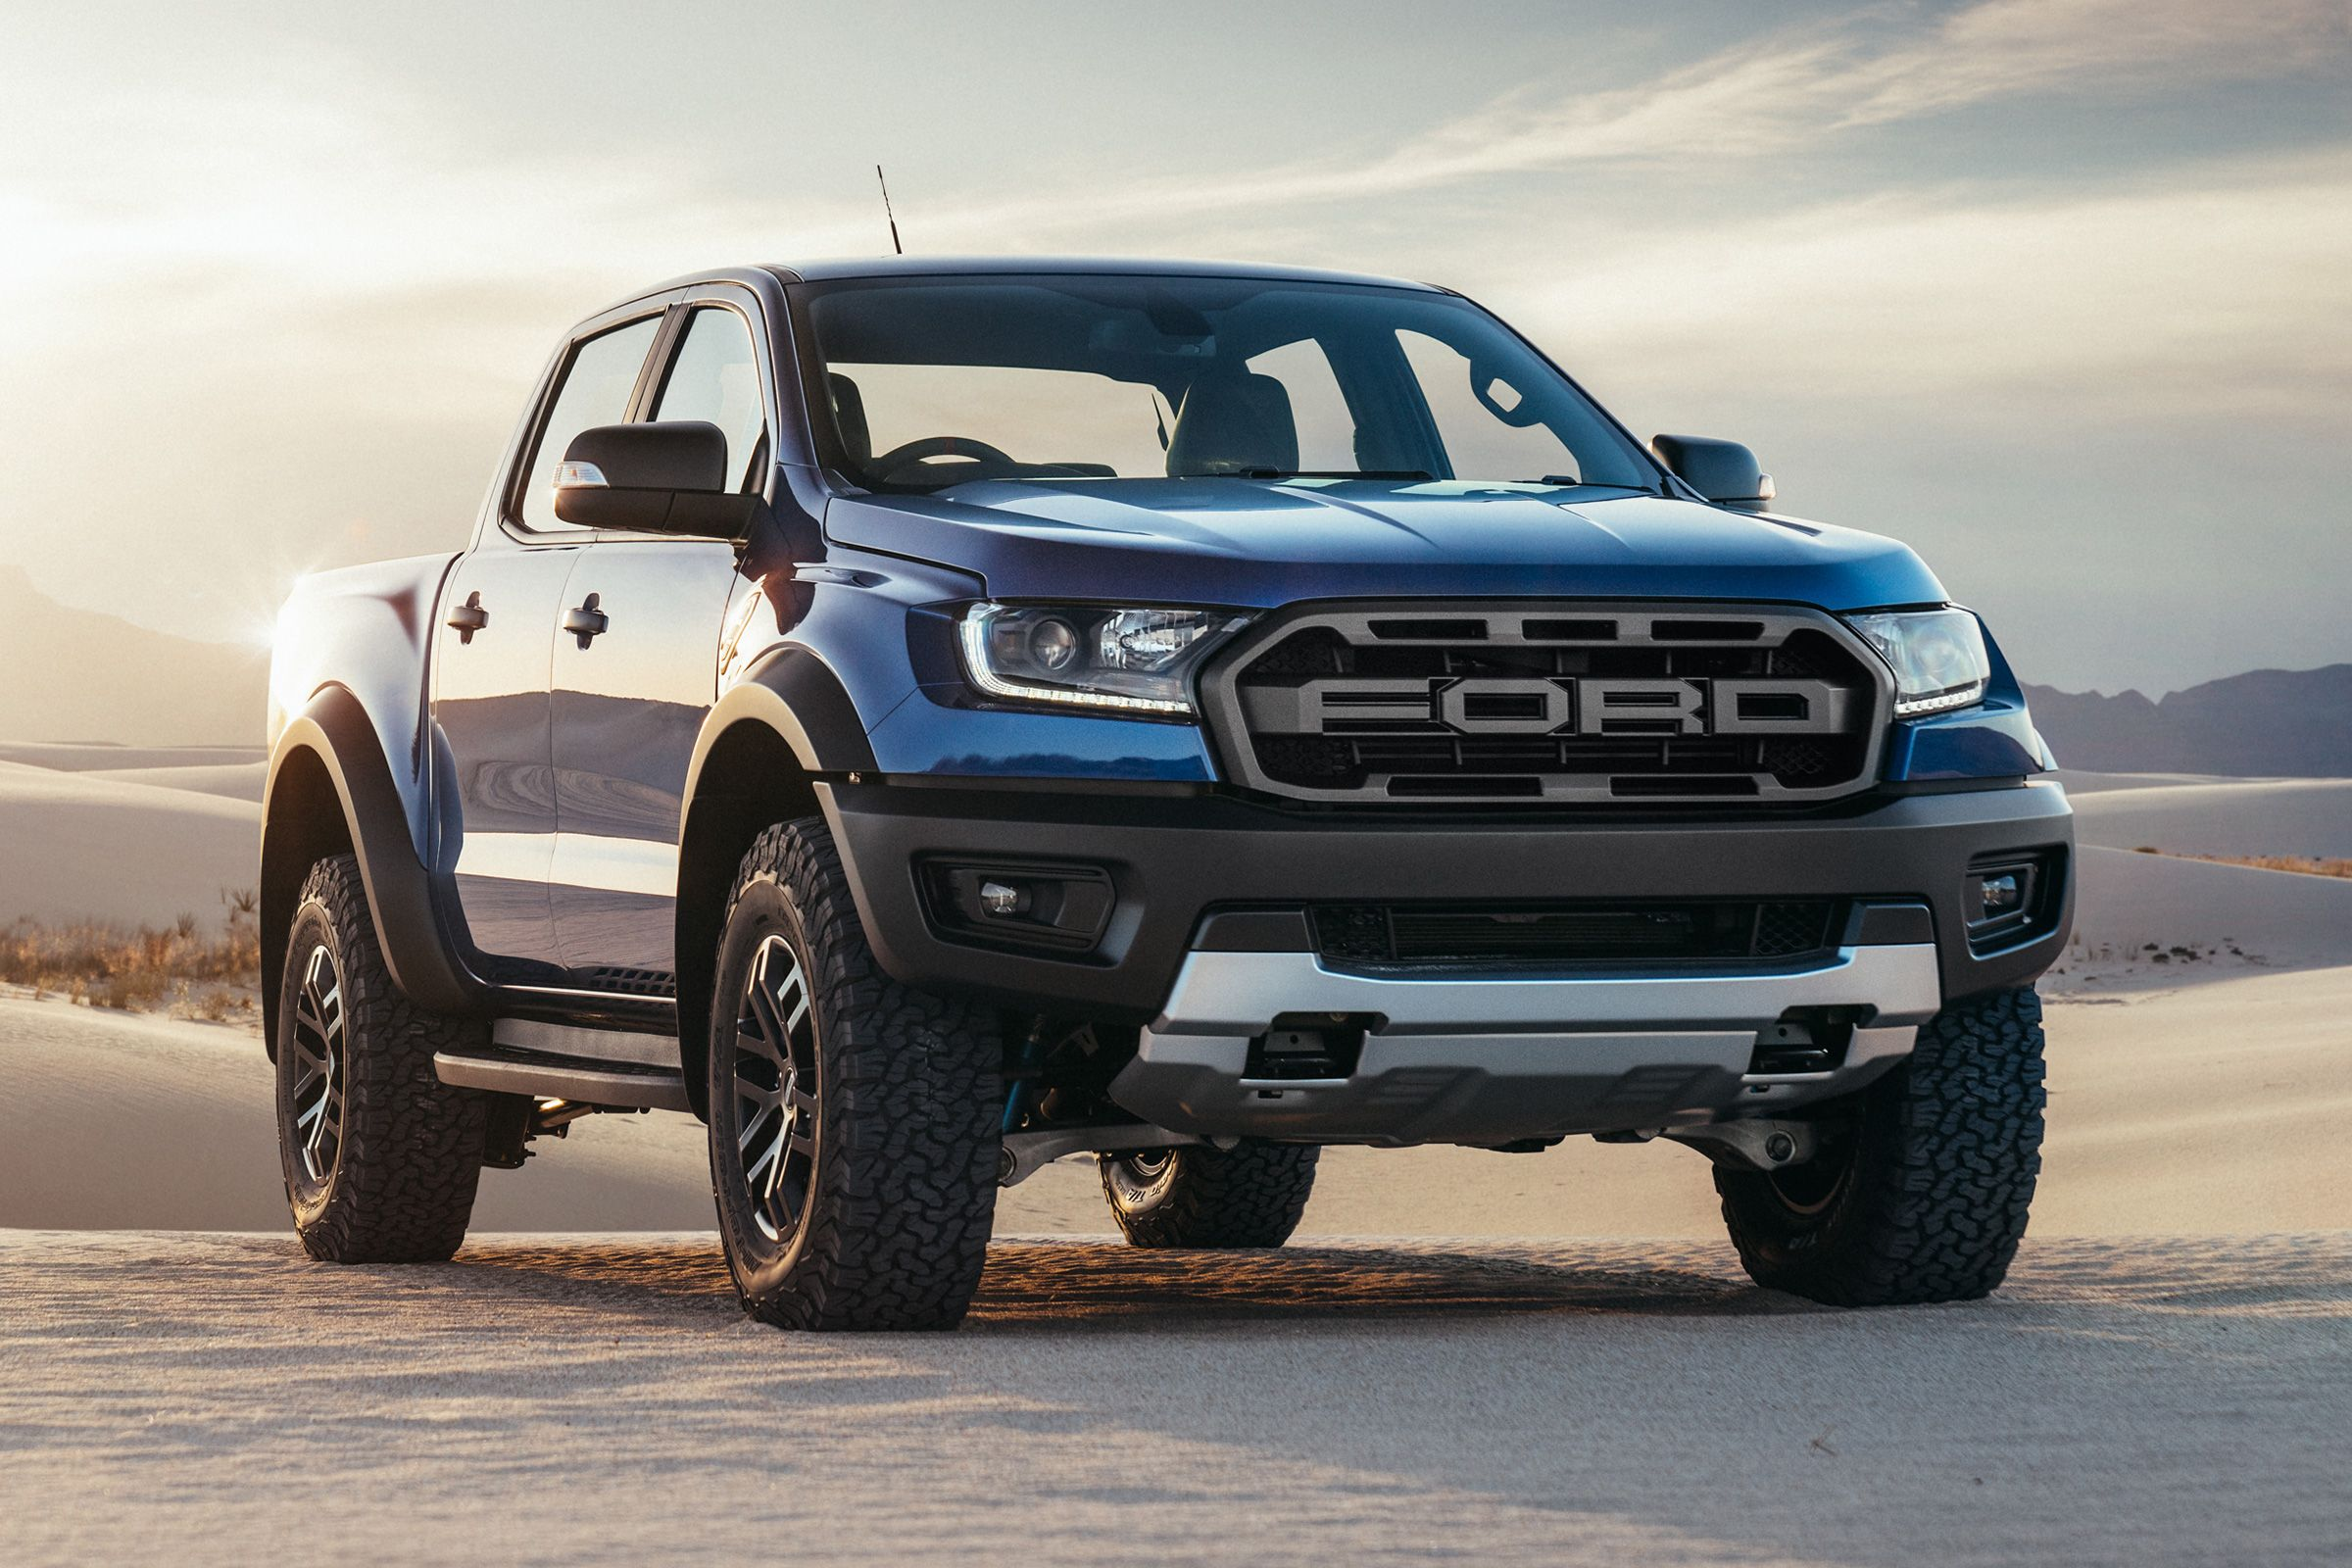 New 2019 Ford Ranger Raptor Uk Prices And Specs Revealed 2019 Ford Ranger Ford Ranger Raptor Ford Ranger Wildtrak